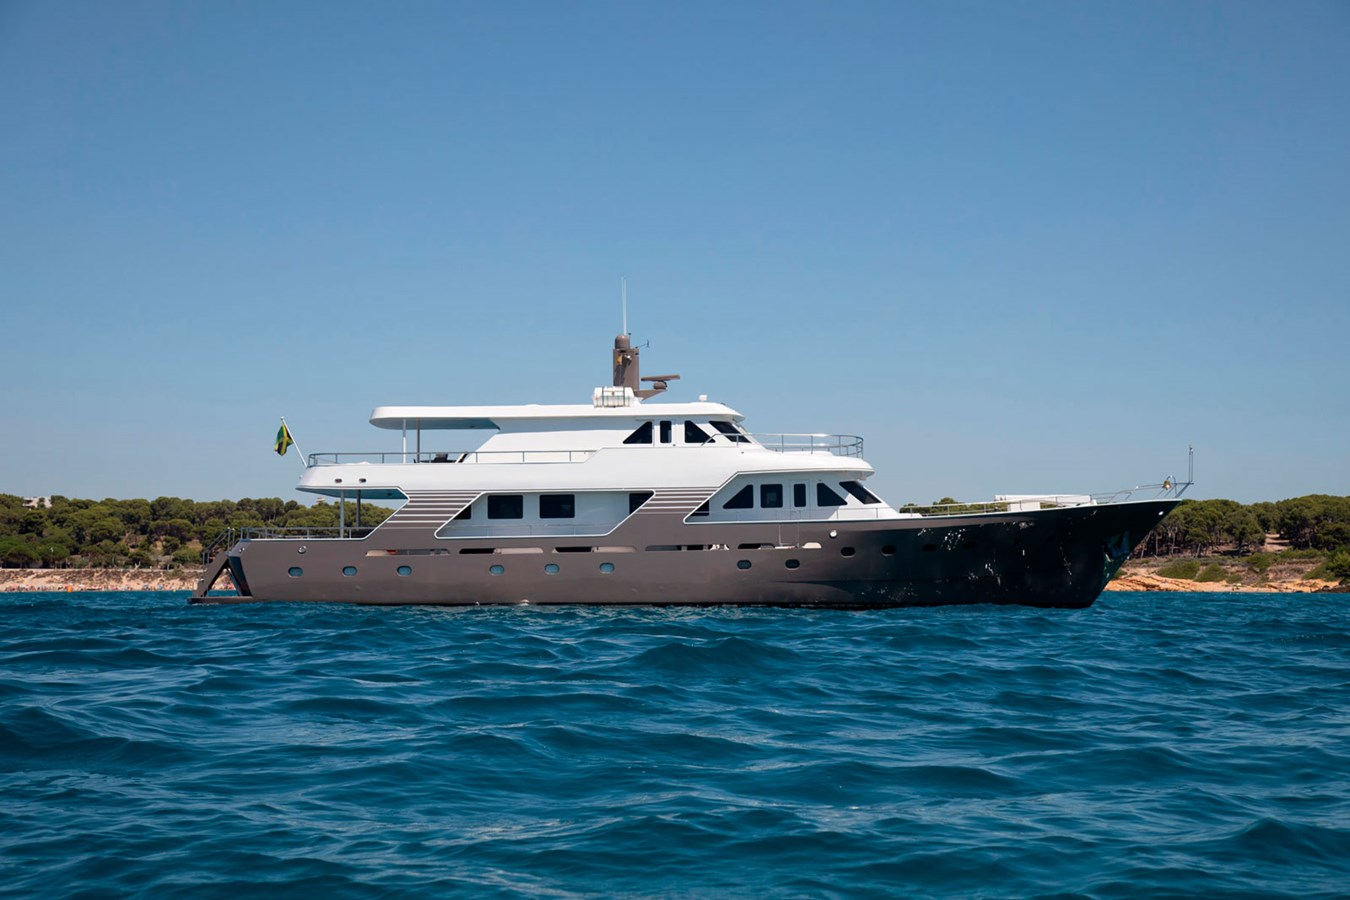 Witsen-and-vis-33m-Yacht-Side-Profile-2 1971 Witsen & Vis  Motor Yacht 2681027